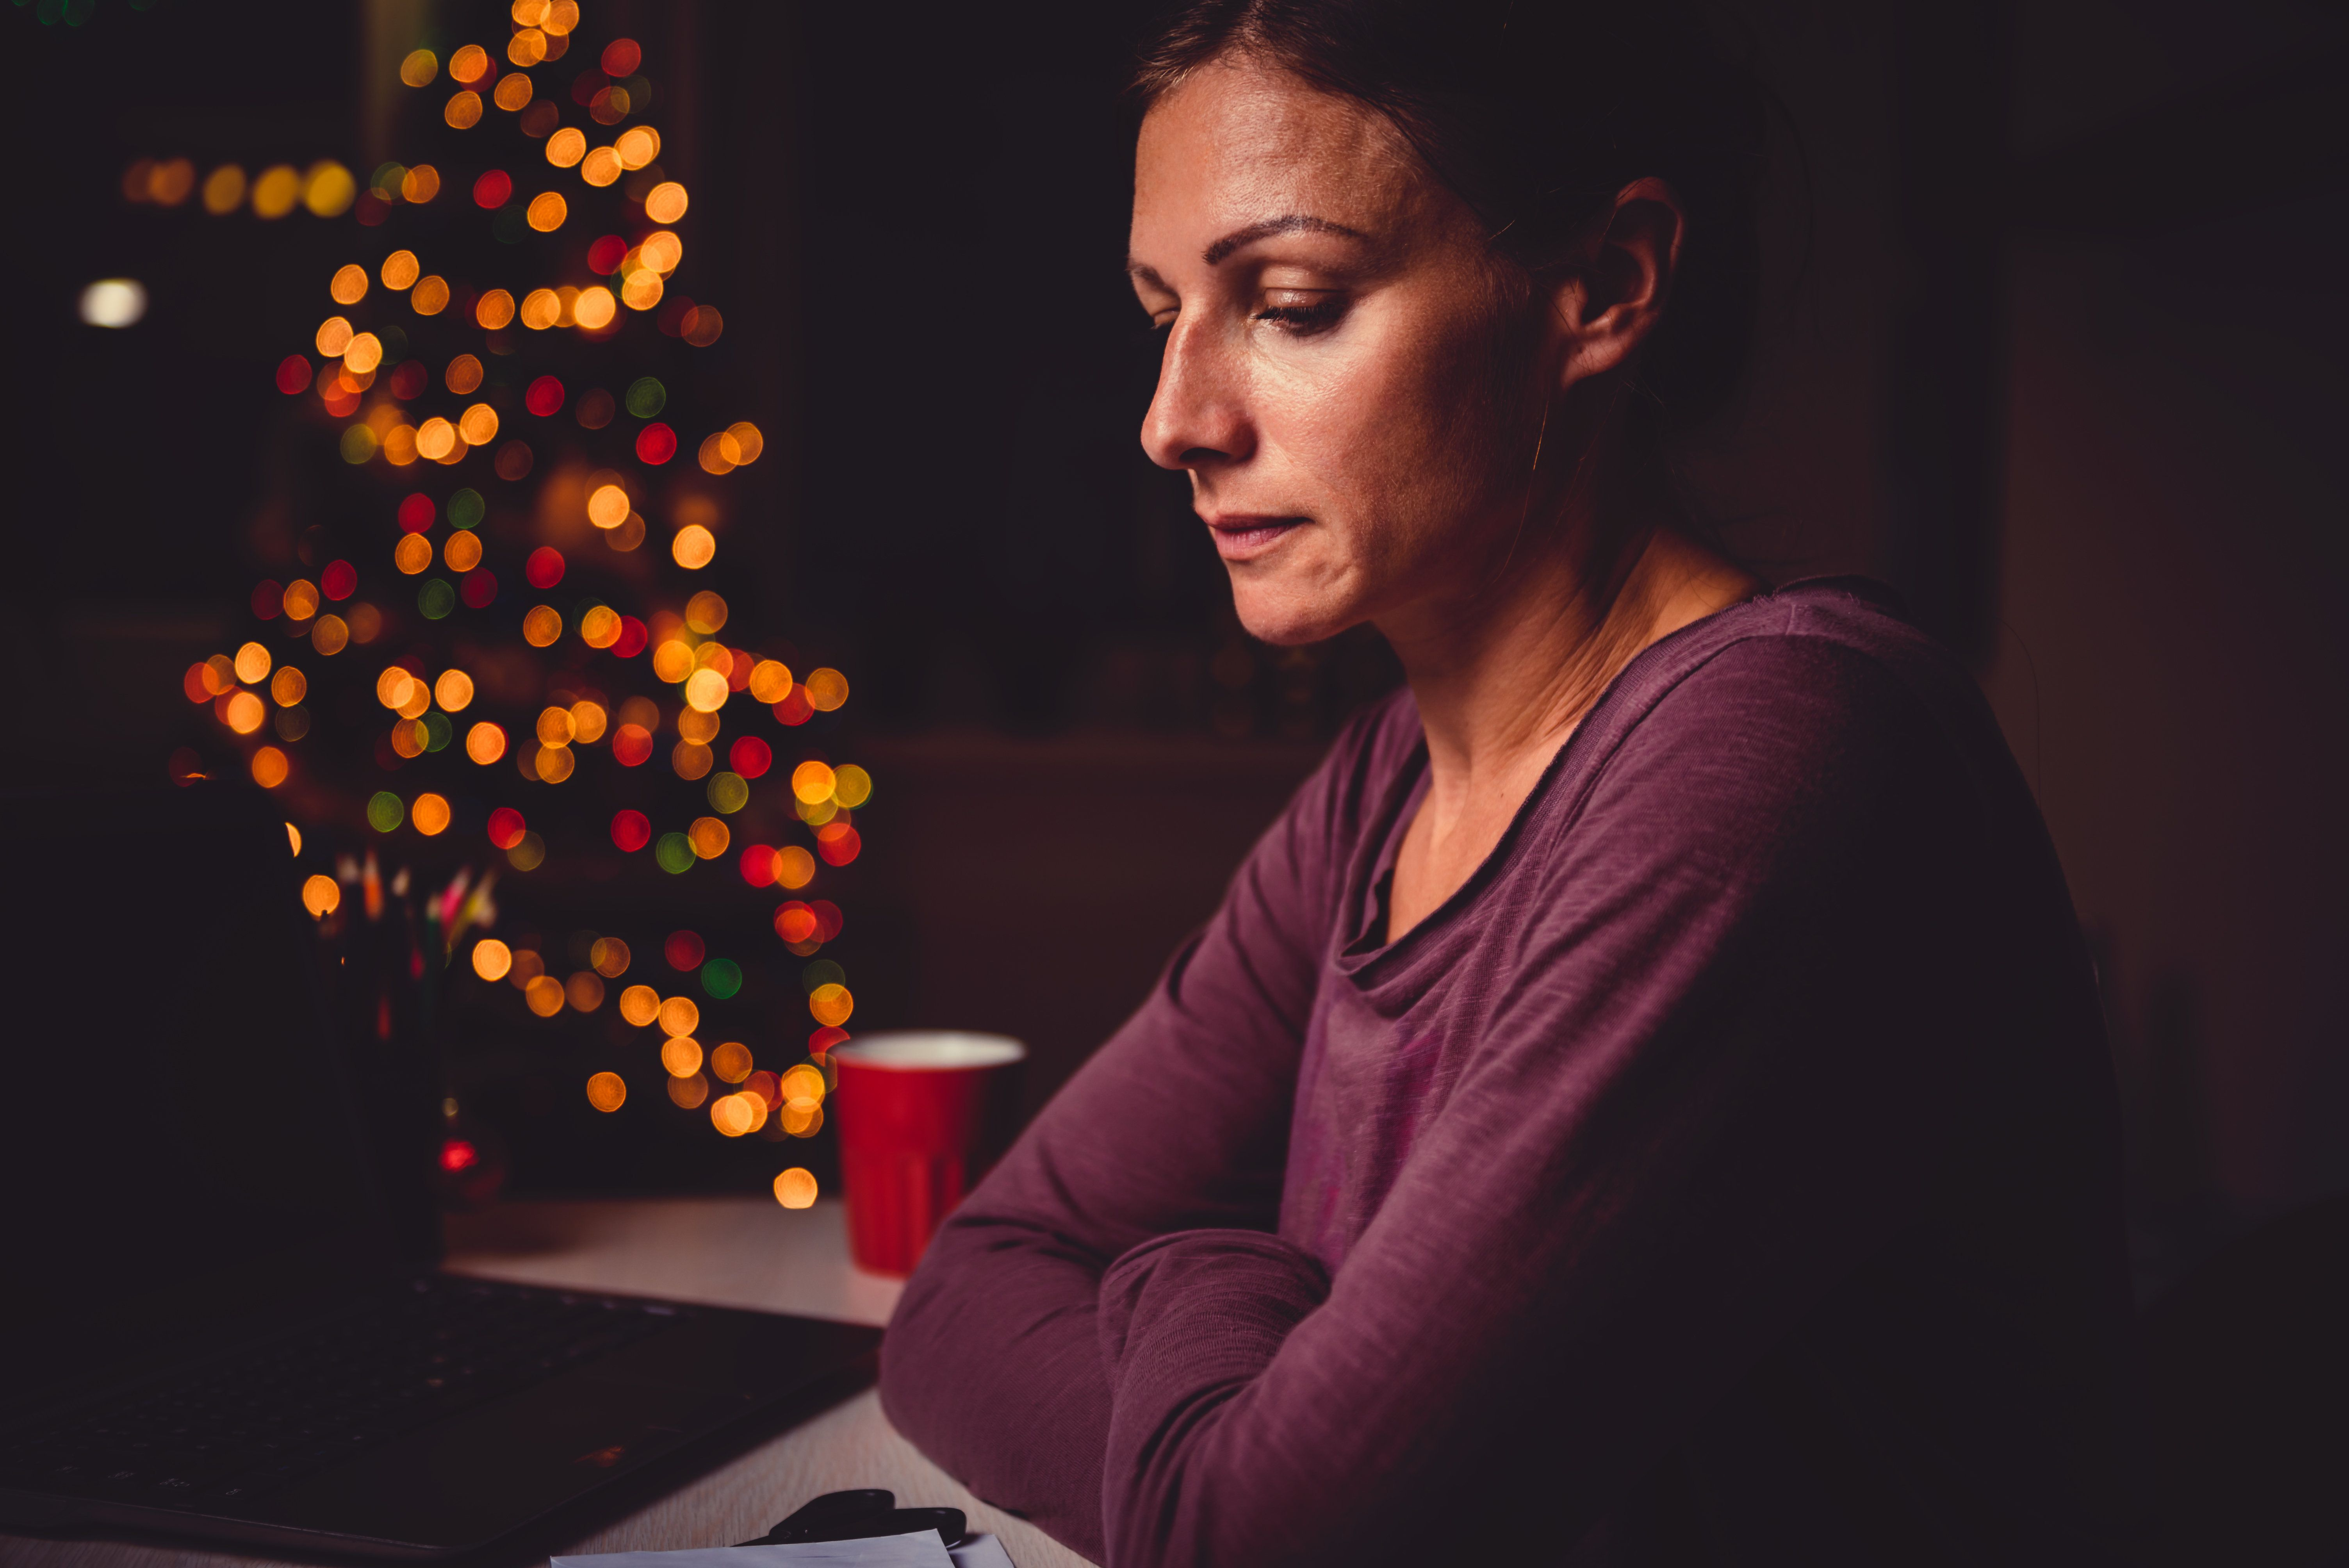 Worried woman working late night at the home office